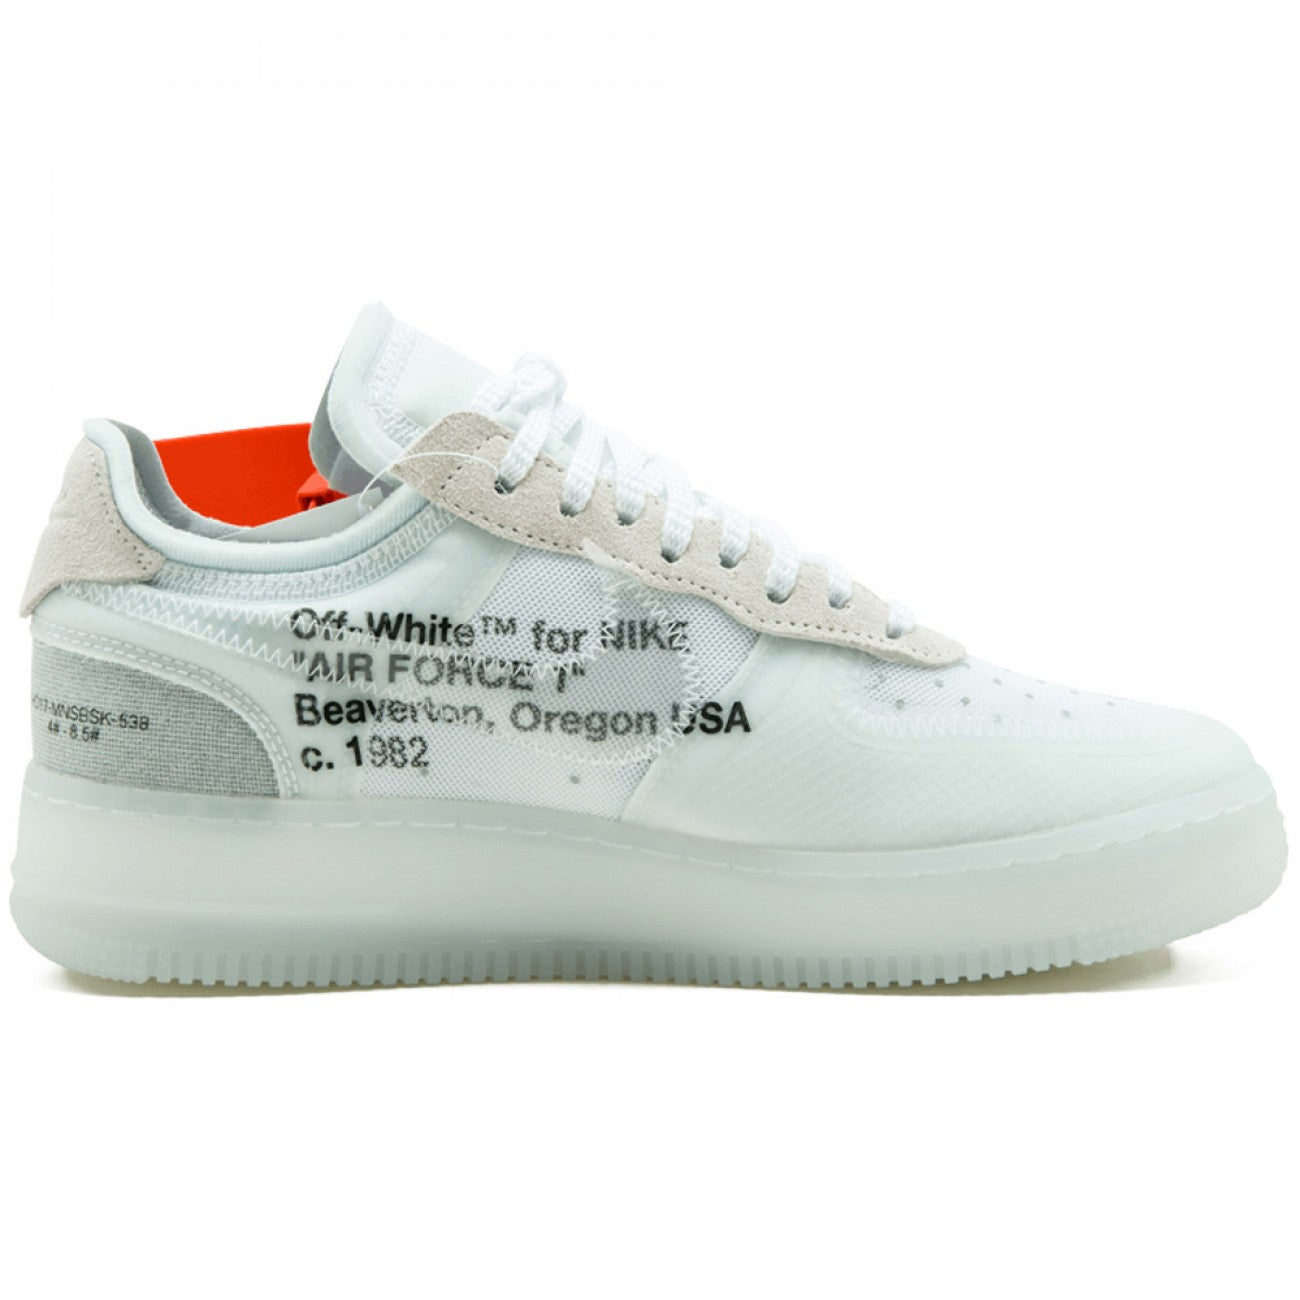 buy online a17f9 e0457 OFF-WHITE X NIKE AIR FORCE 1 LOW - WHITE